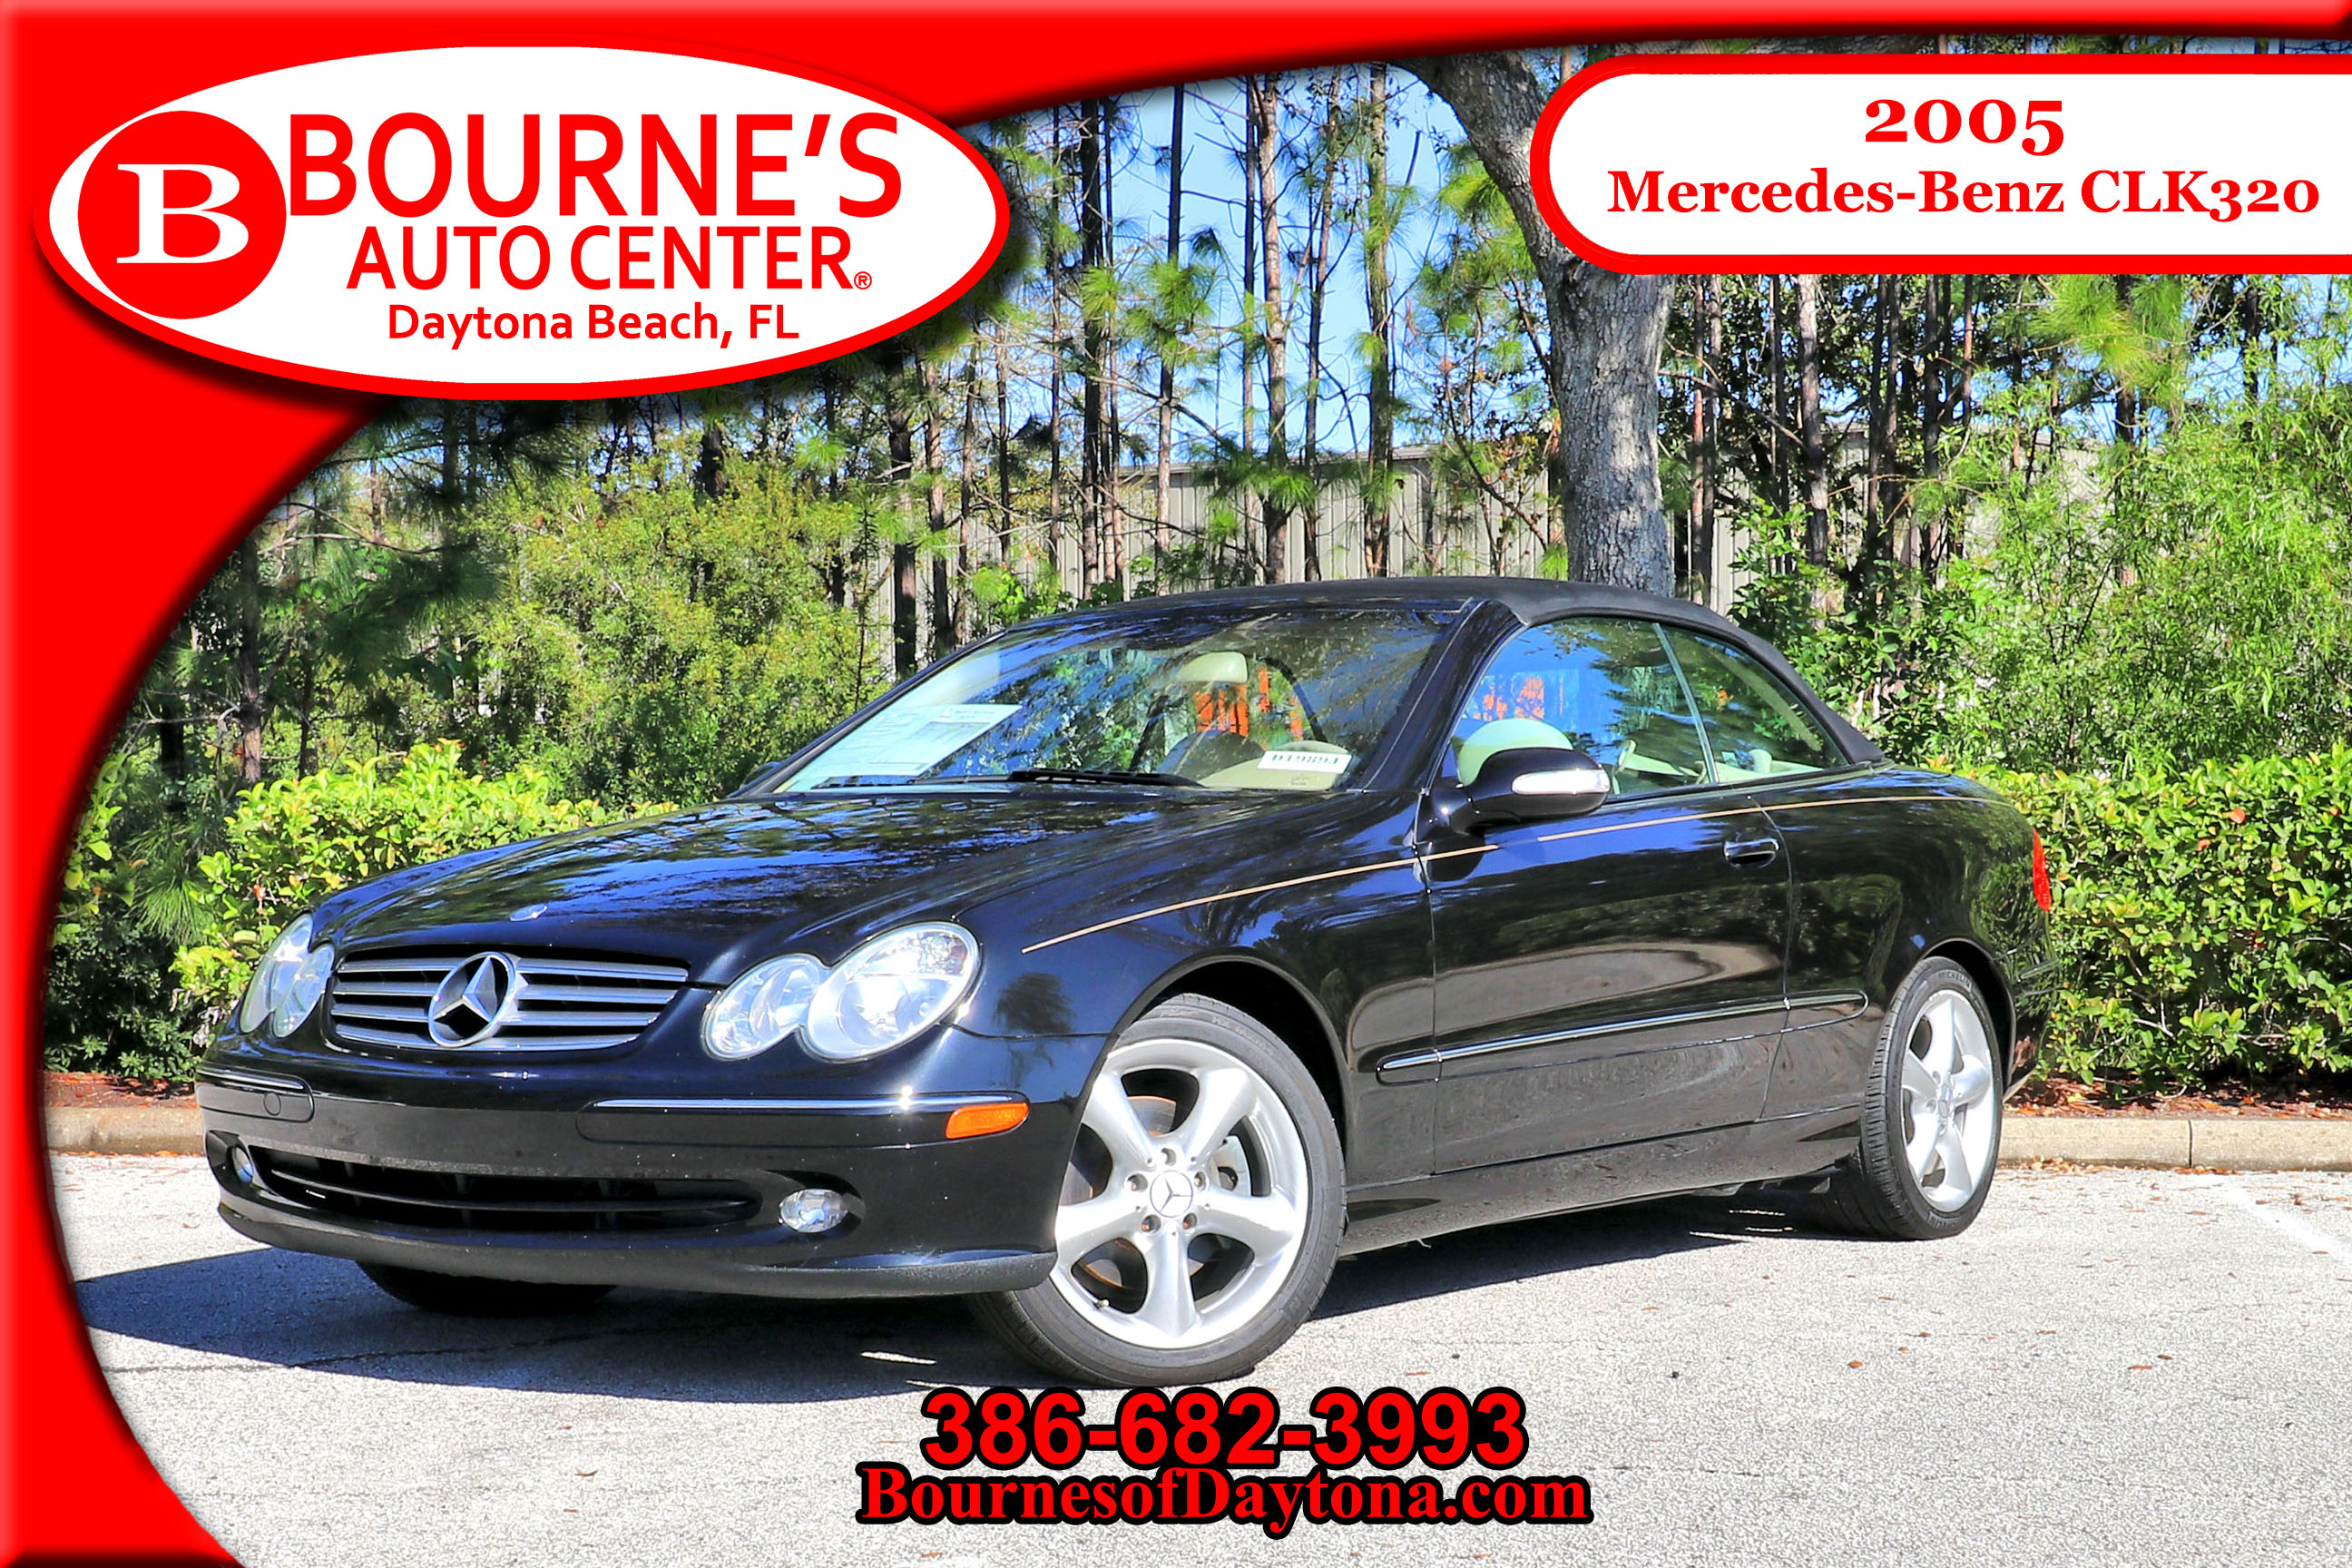 2005 Mercedes-Benz CLK-320 Convertible/ Leather Convertible